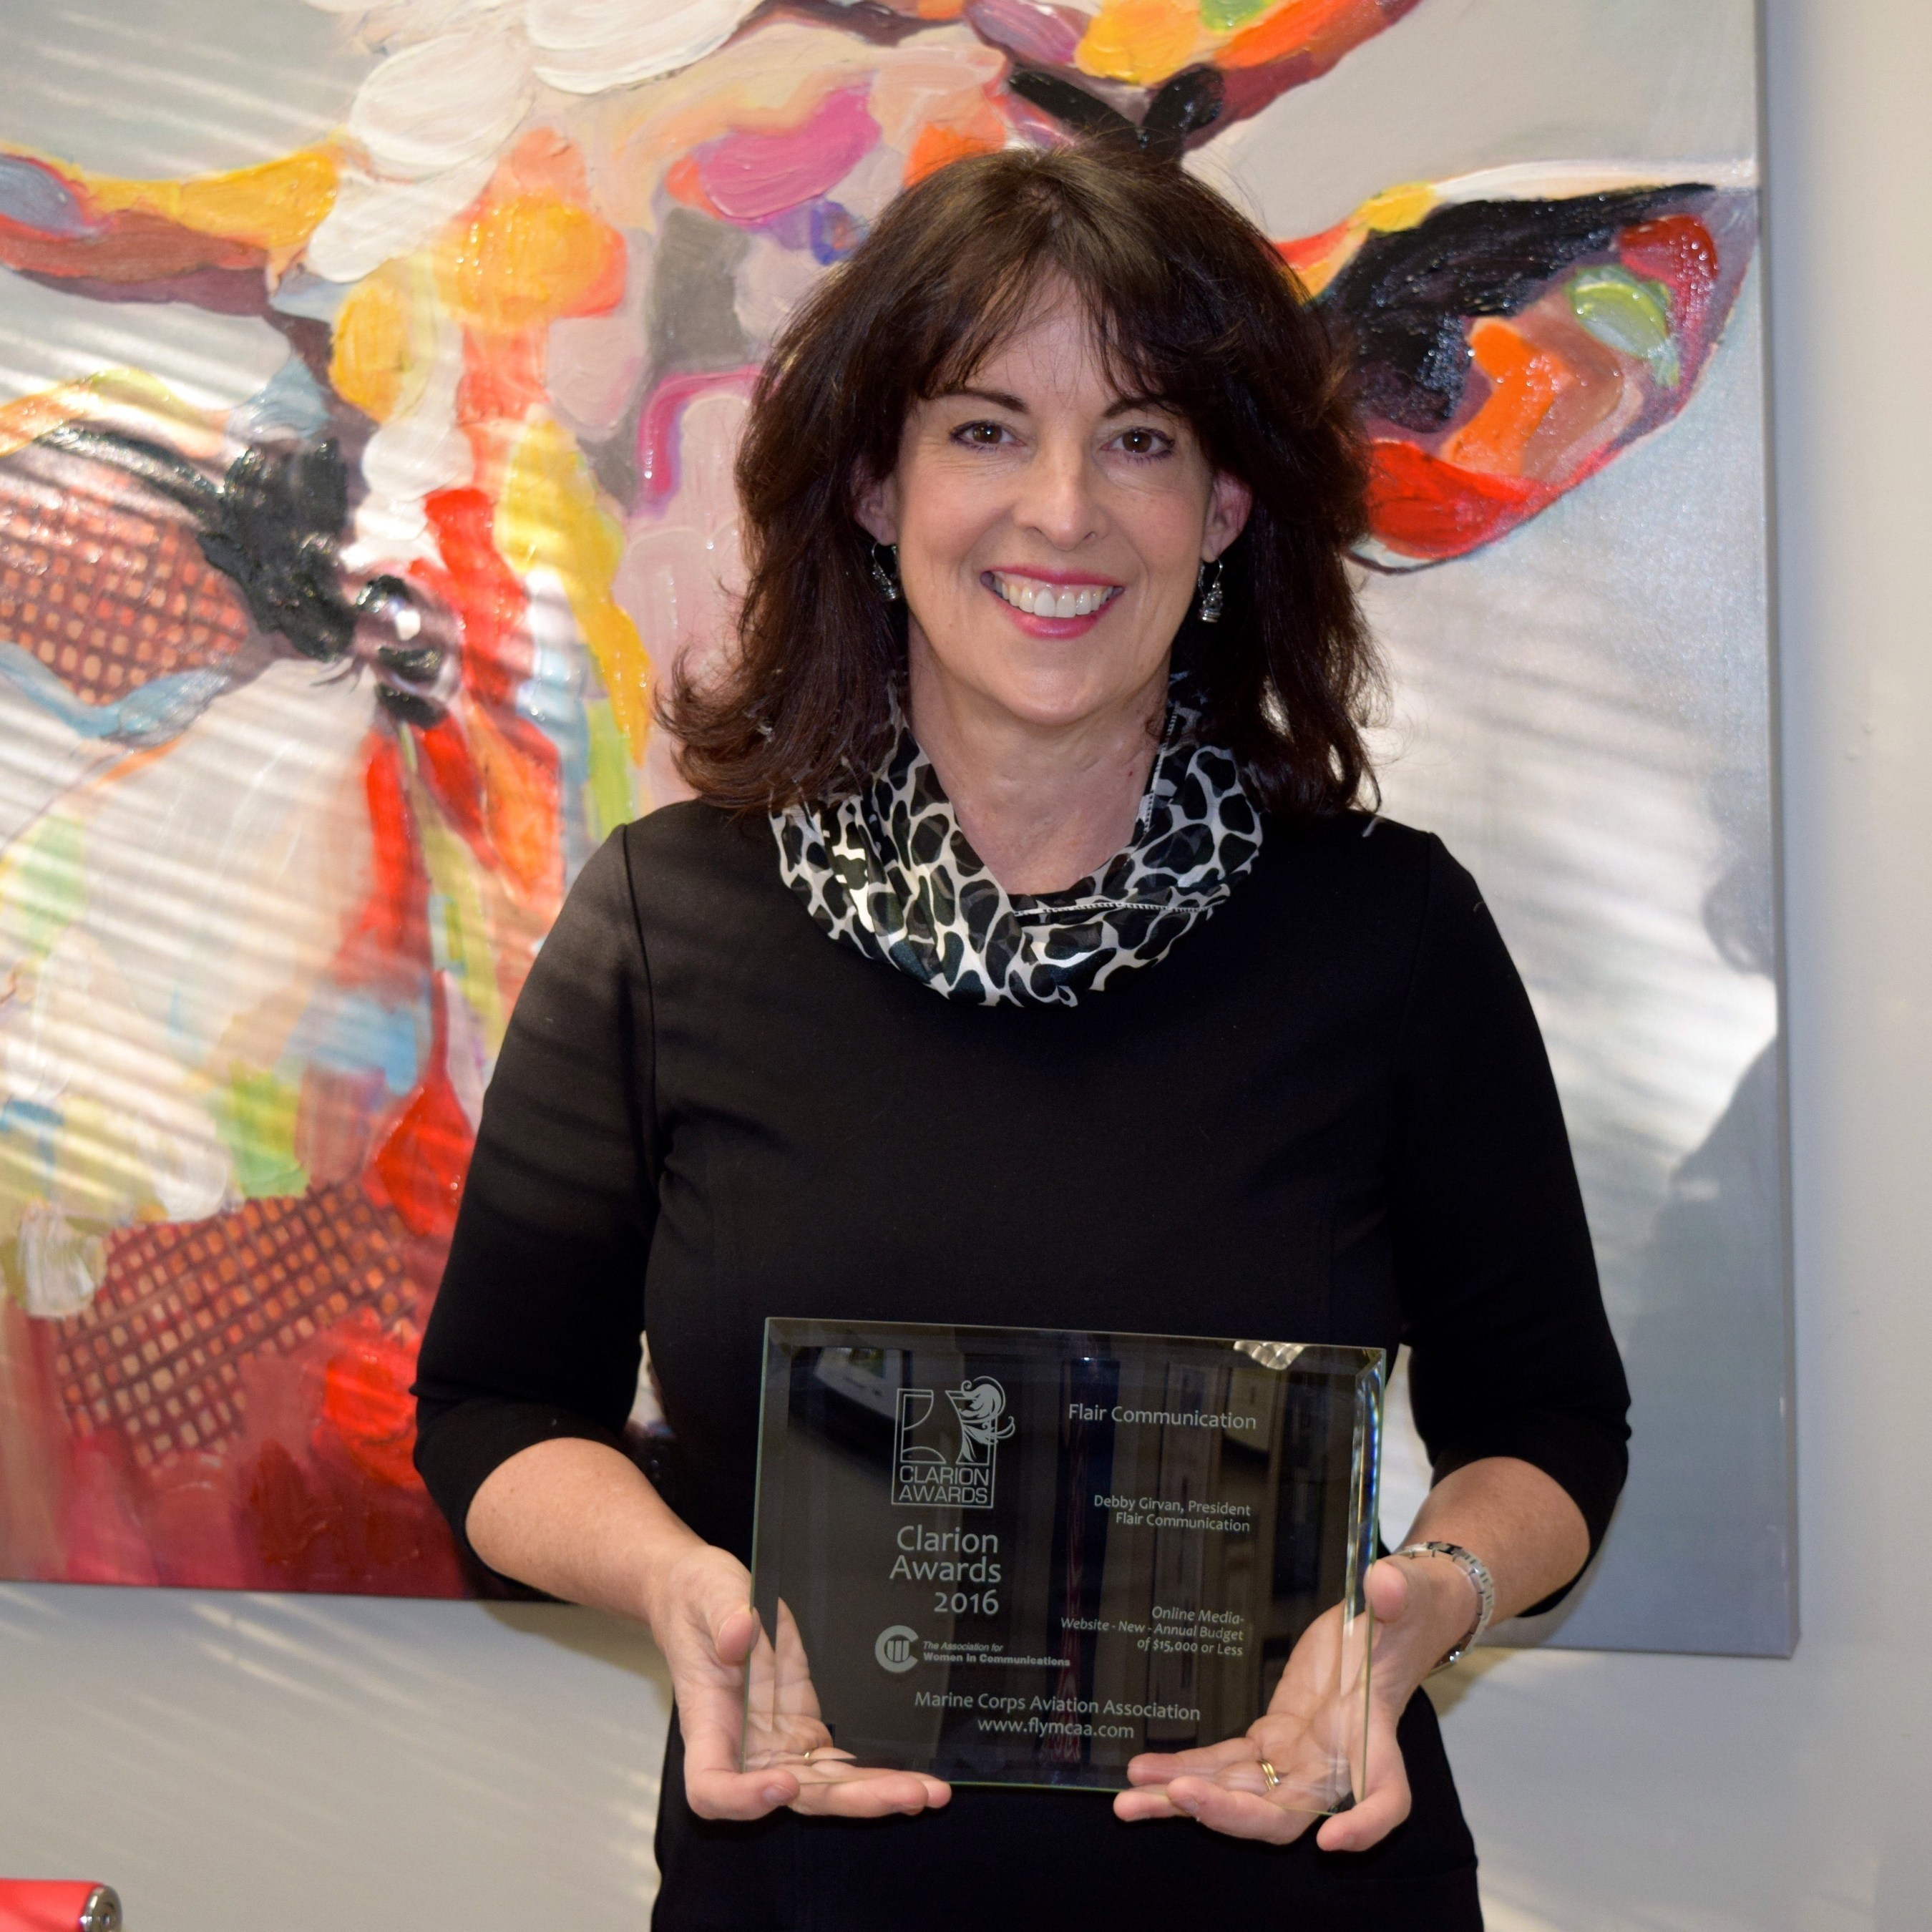 Debby Girvan wins 2016 Clarion Award for her design of a new website for the Marine Corps Aviation Association, ww.flymcaa.org.